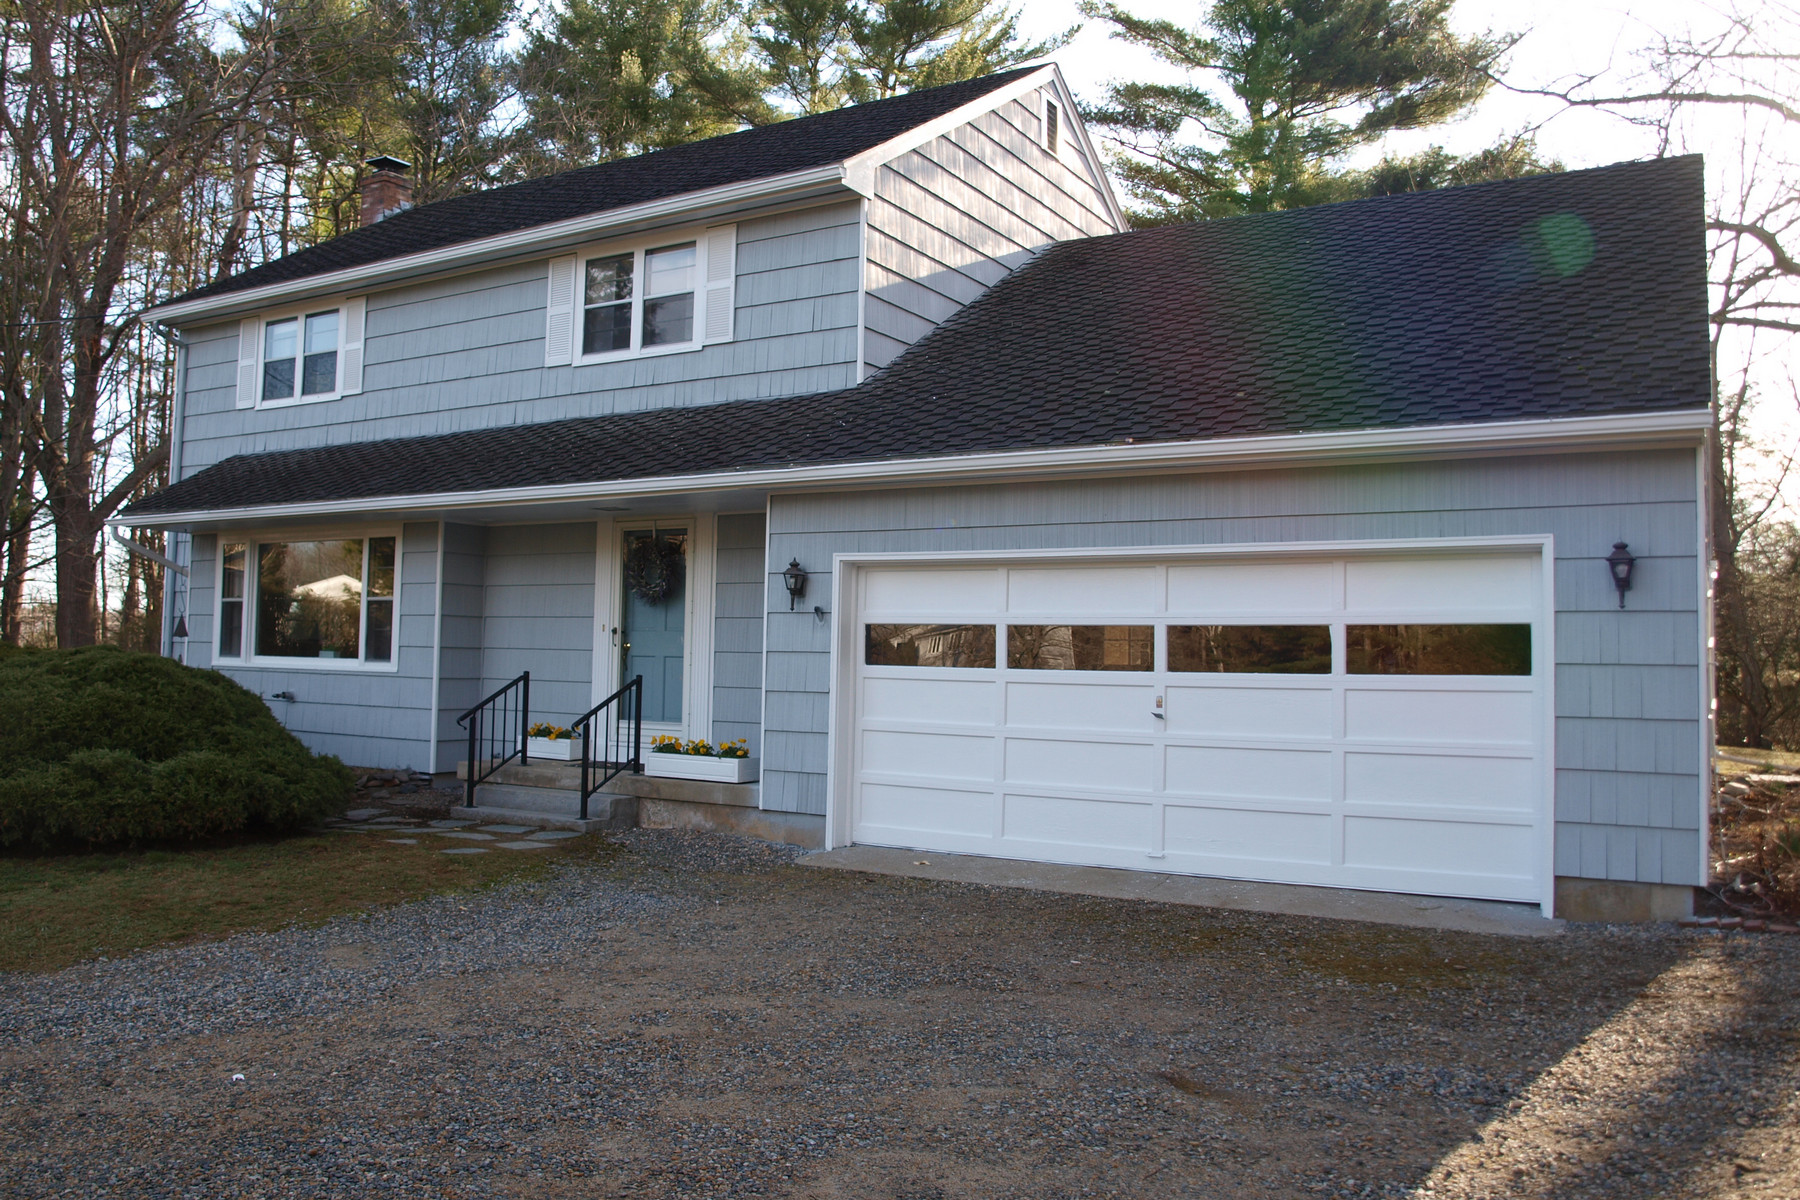 Single Family Home for Sale at Maine Seacoast Living 24 River Bend Road York, Maine, 03909 United States